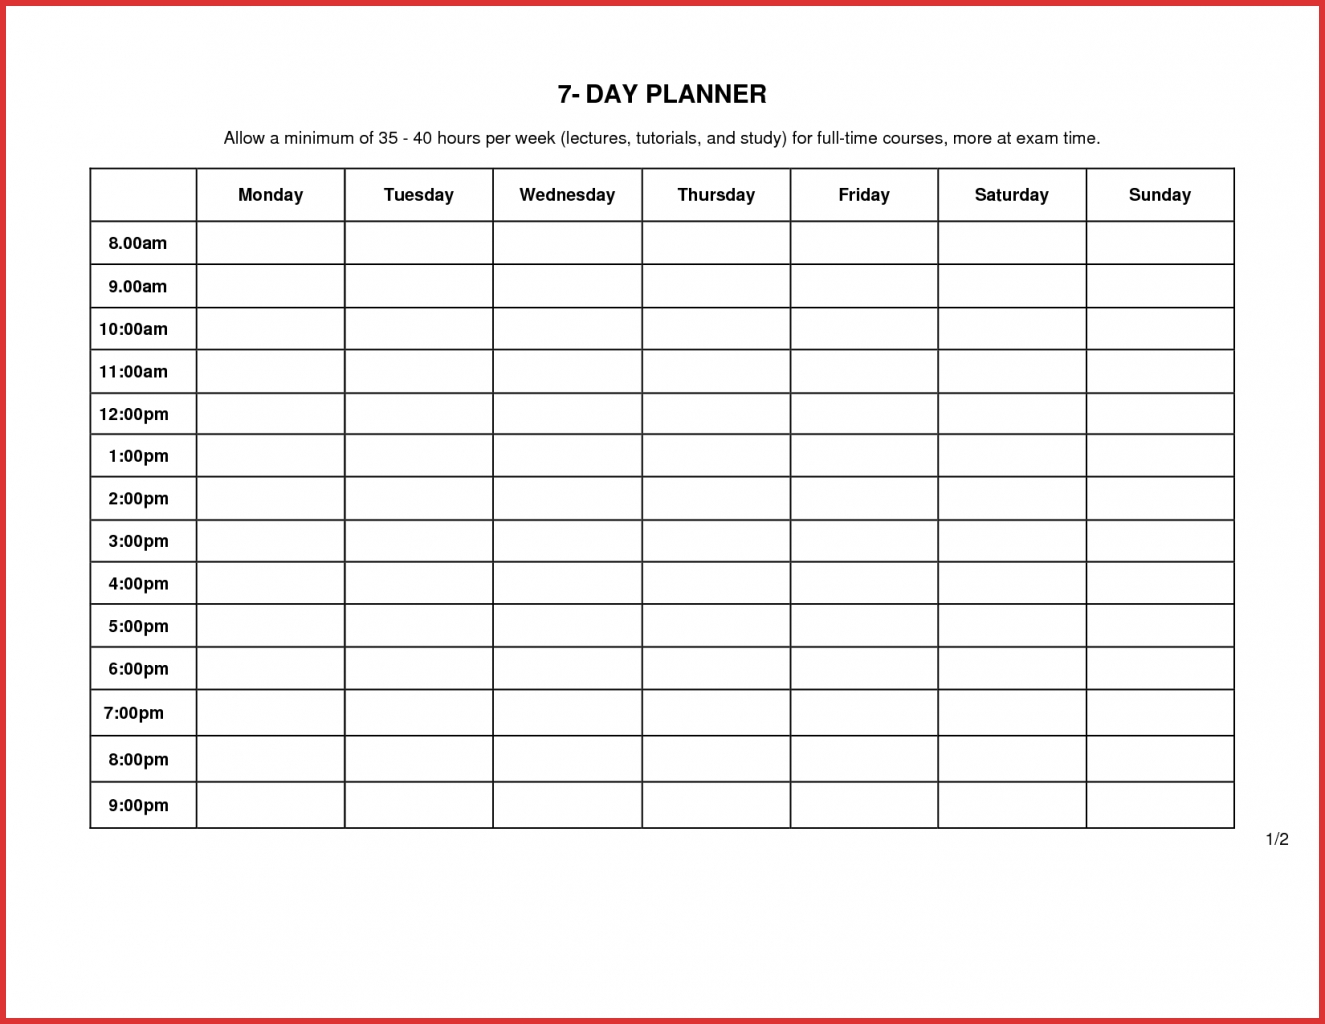 7 day weekly schedule template physicminimalisticsco 7 Day Weekly Planner Template Printable erdferdf